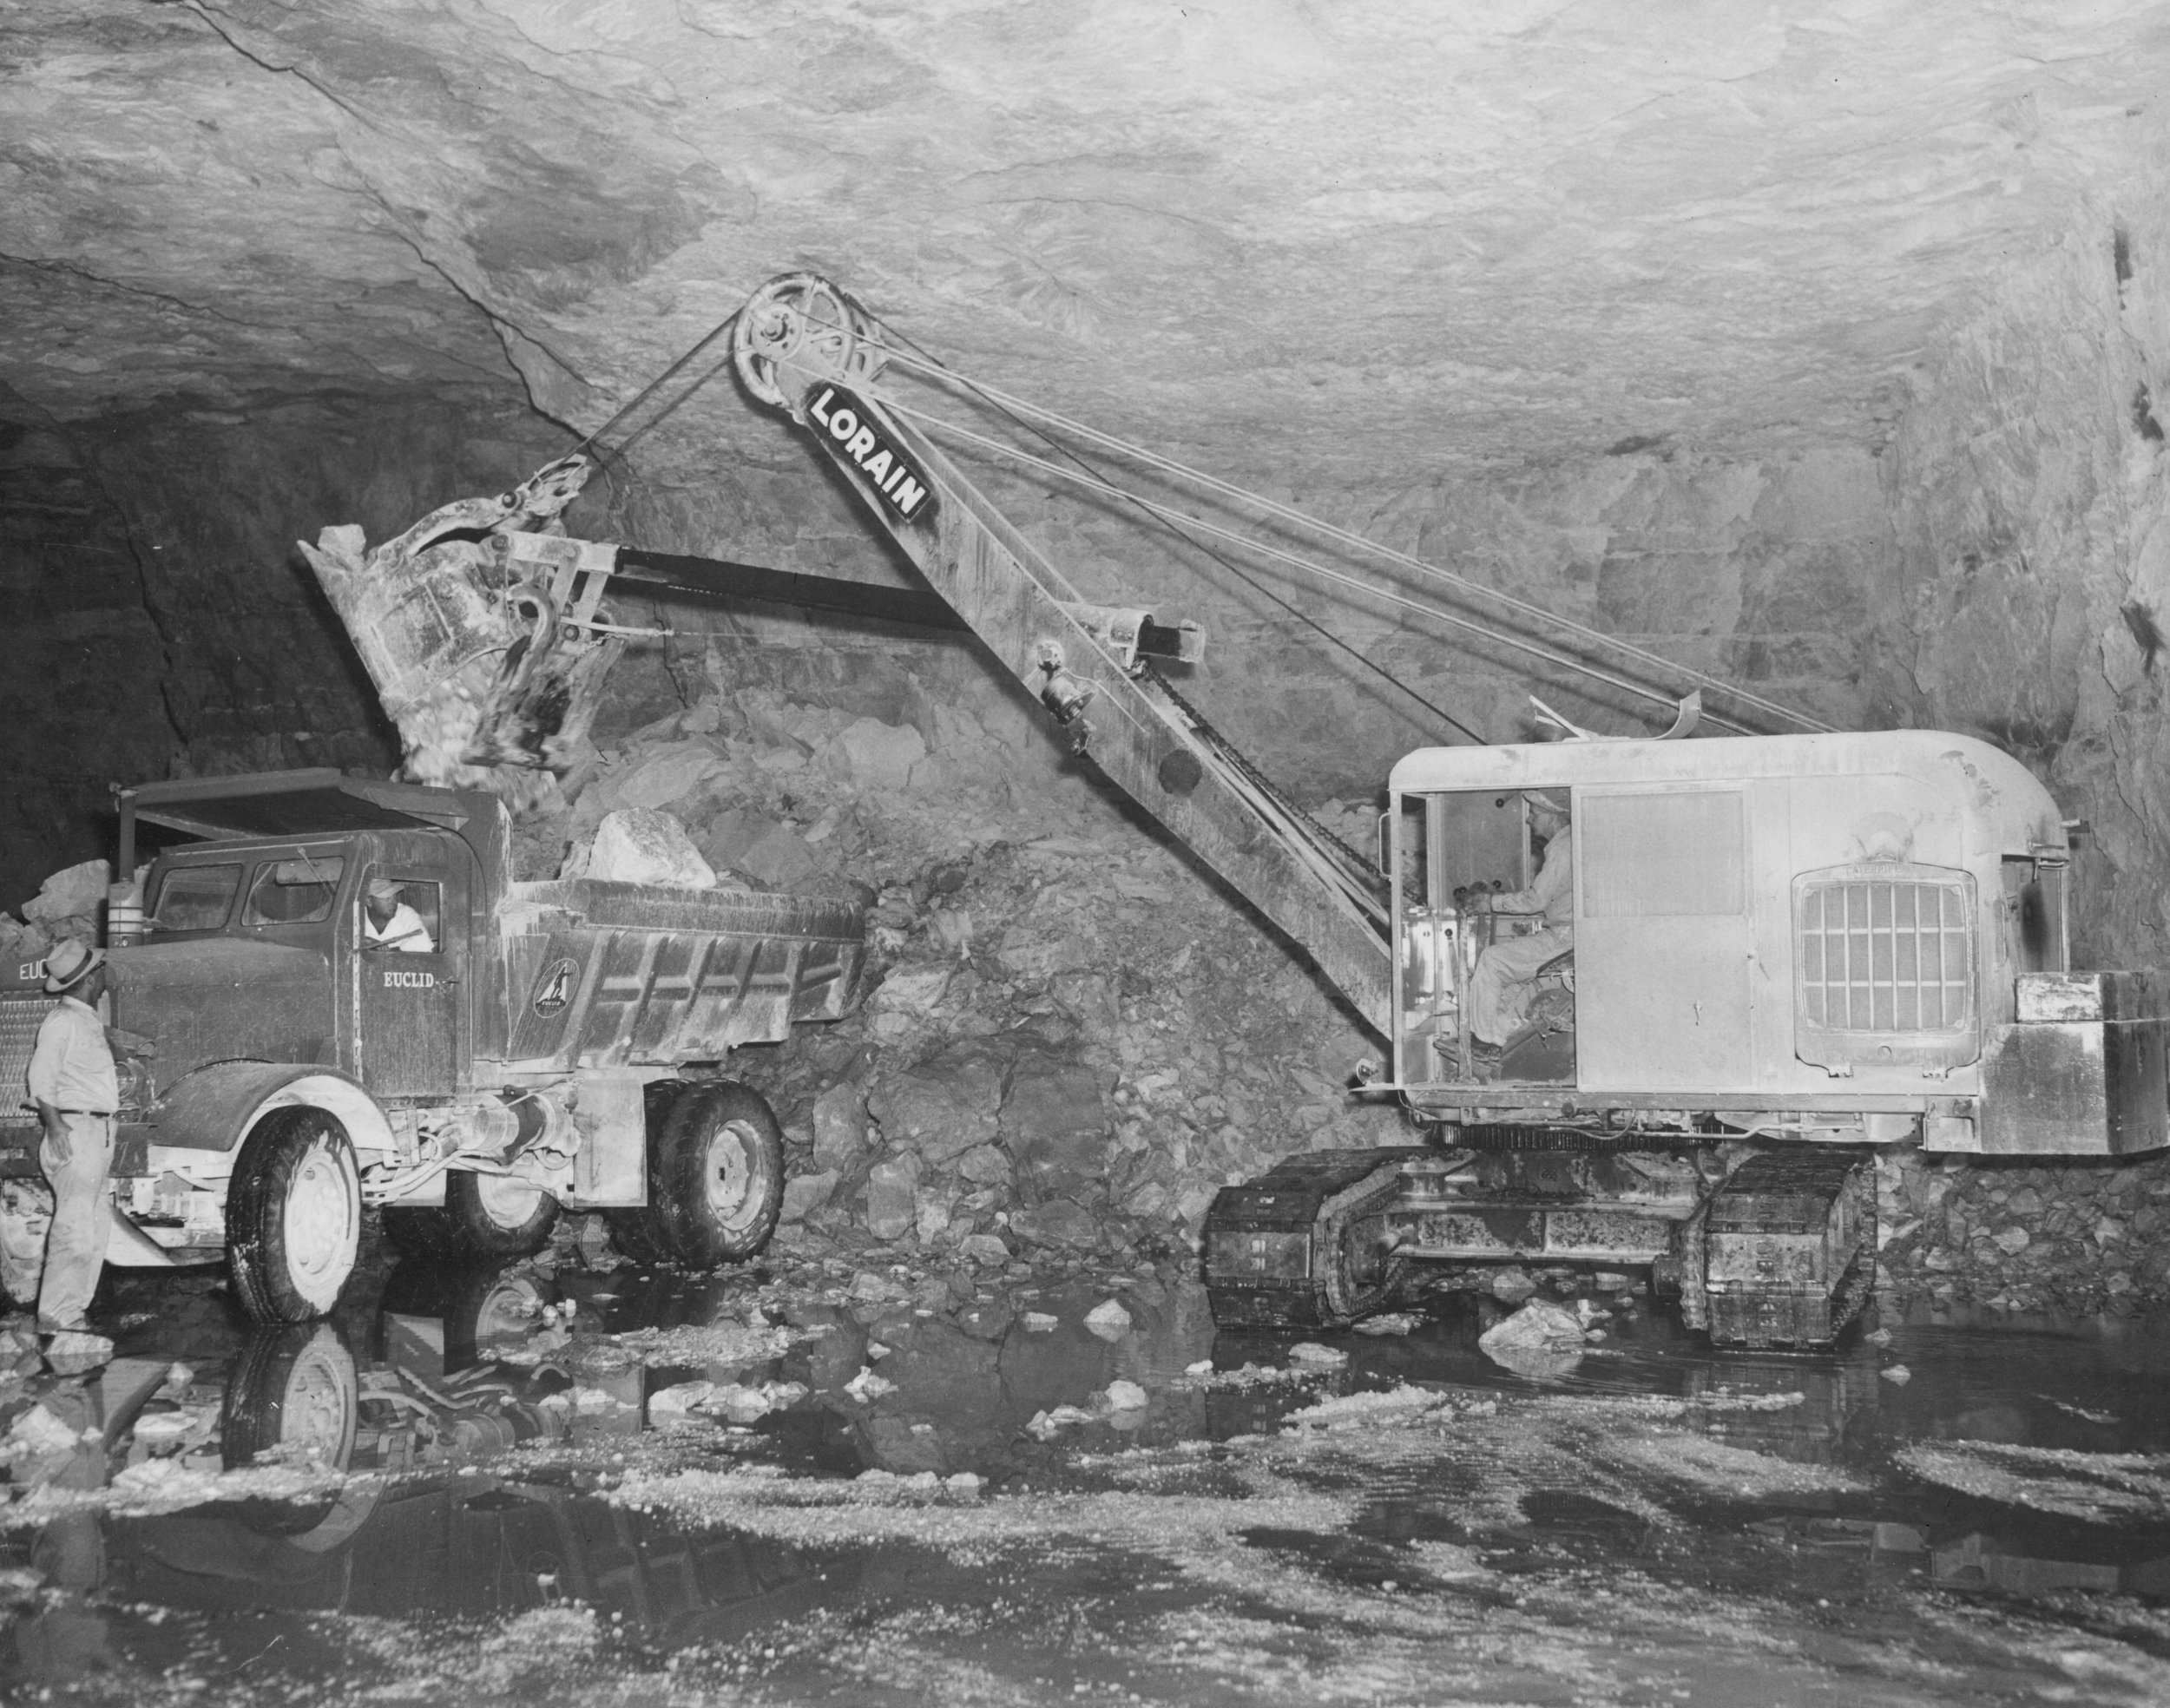 In 1954, mining operations went underground using the room and pillar method of mining in order to reduce dust and noise to the surrounding area.